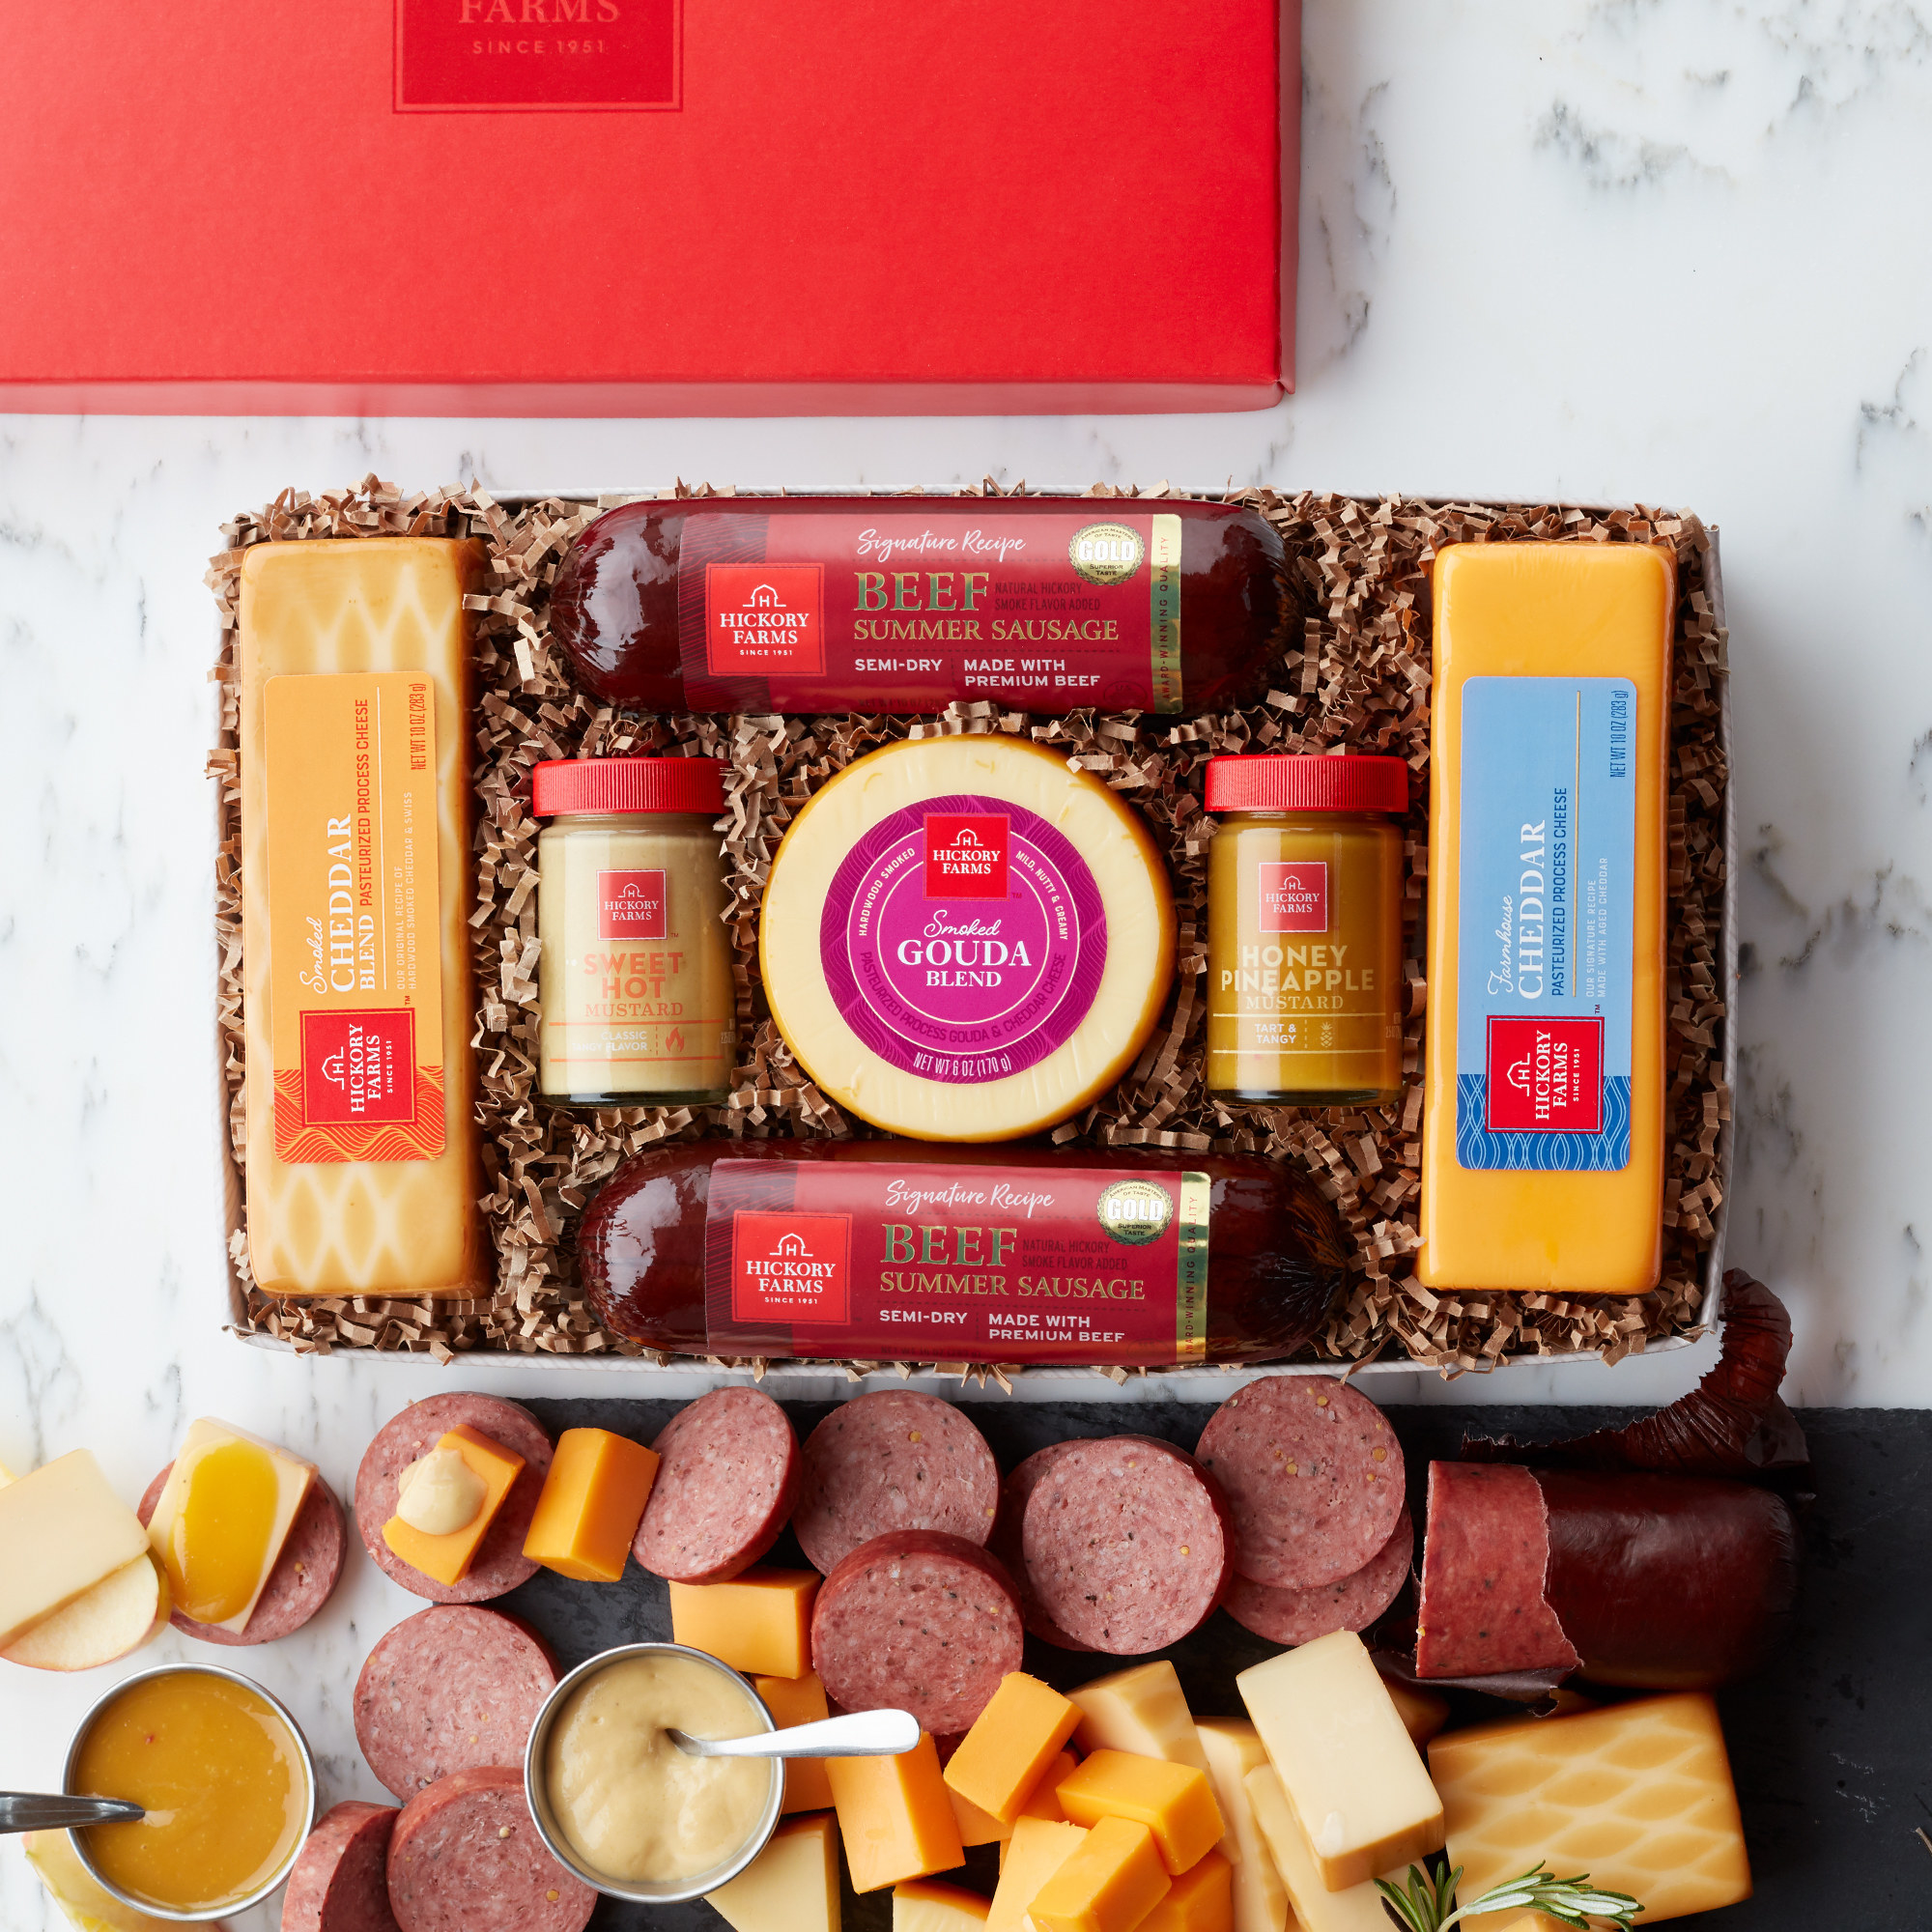 Box with packed sausage, cheese, and mustards